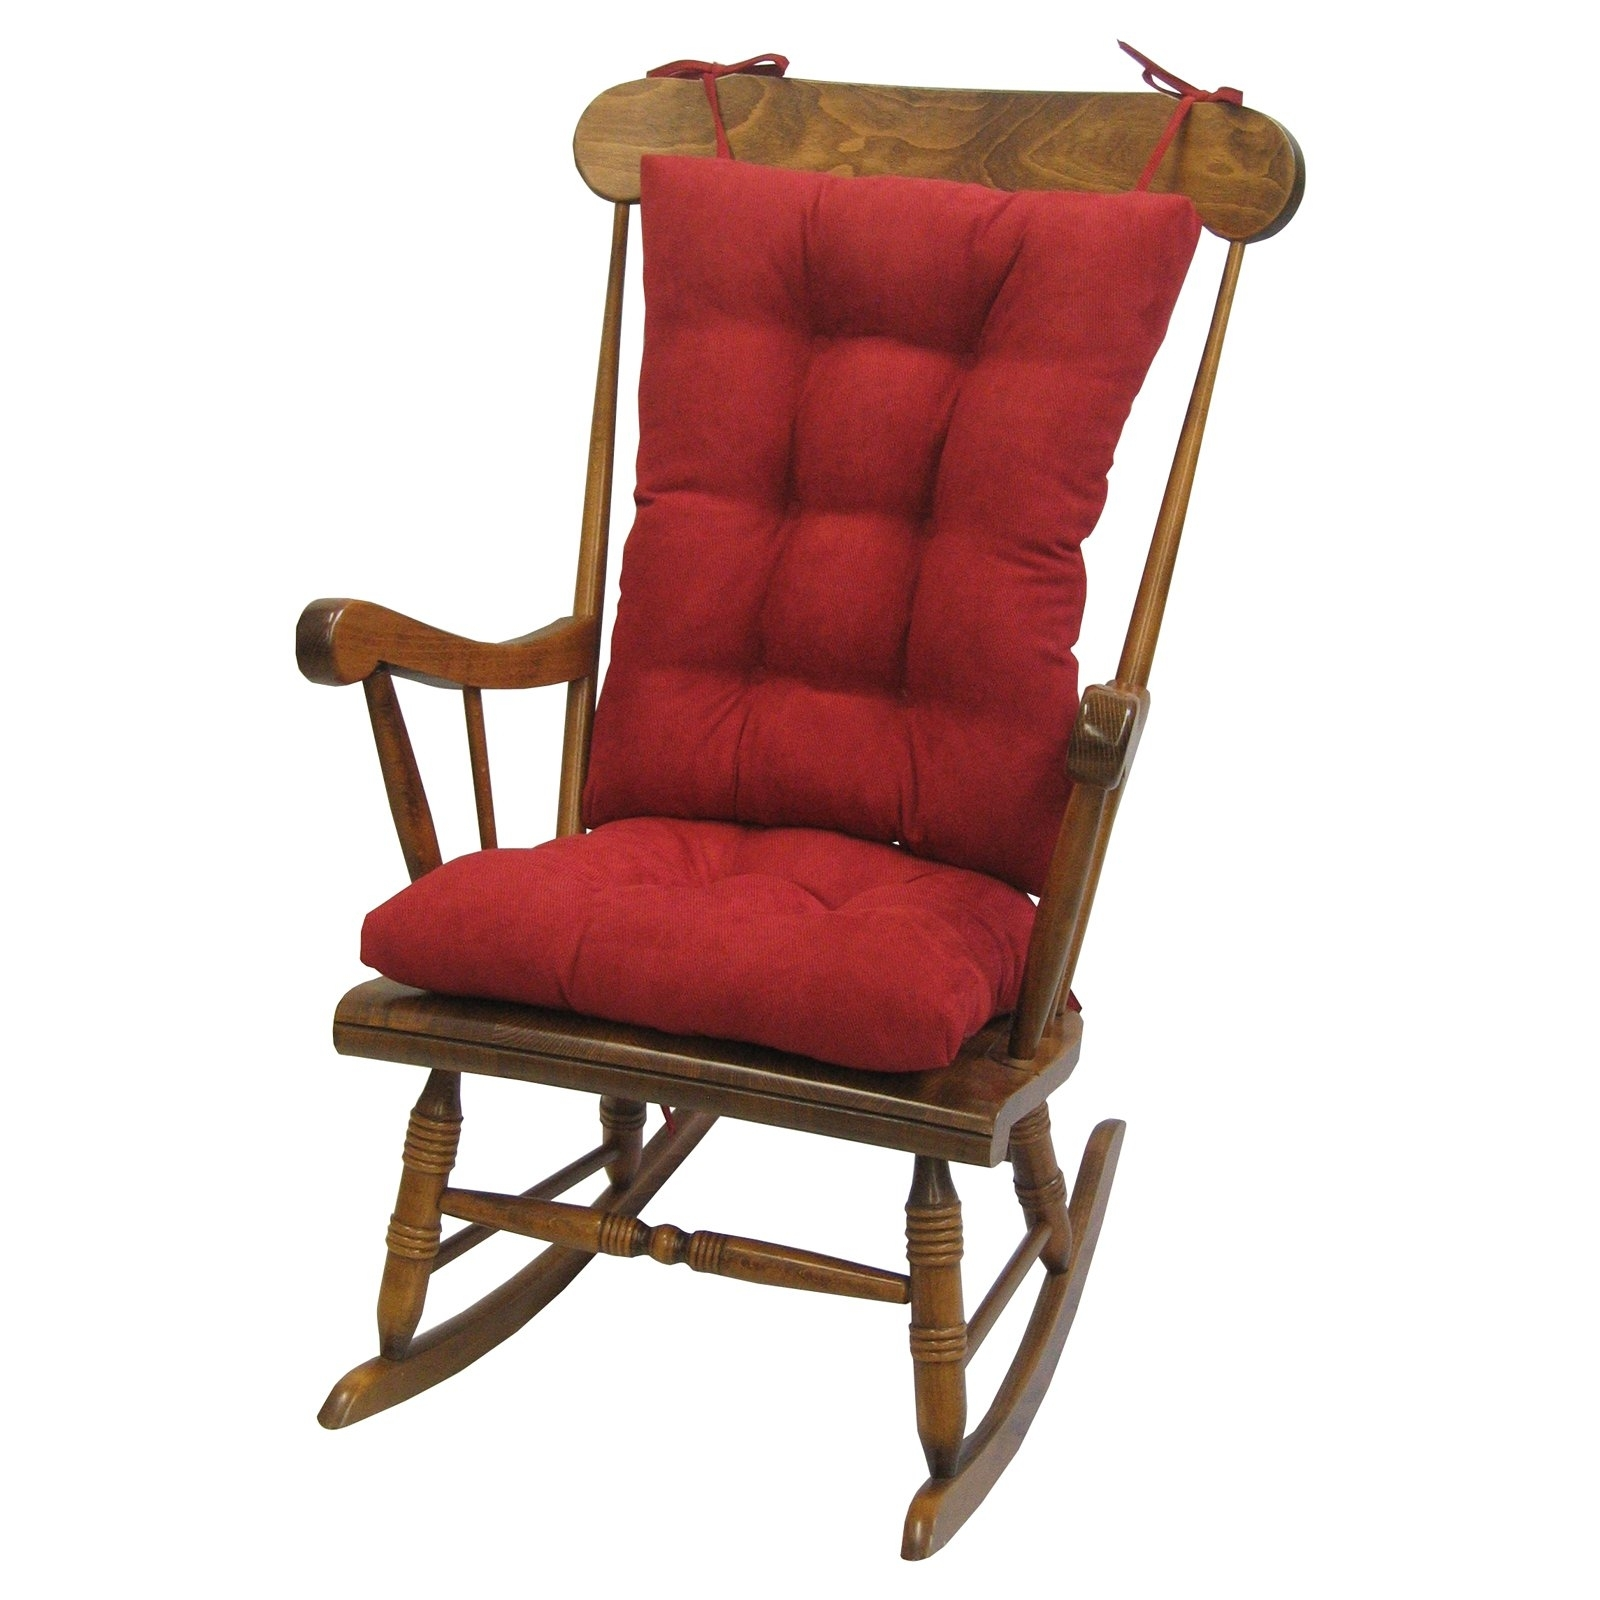 Gripper Jumbo Rocking Chair Cushions, Nouveau – Walmart In Recent Rocking Chairs With Cushions (View 6 of 20)